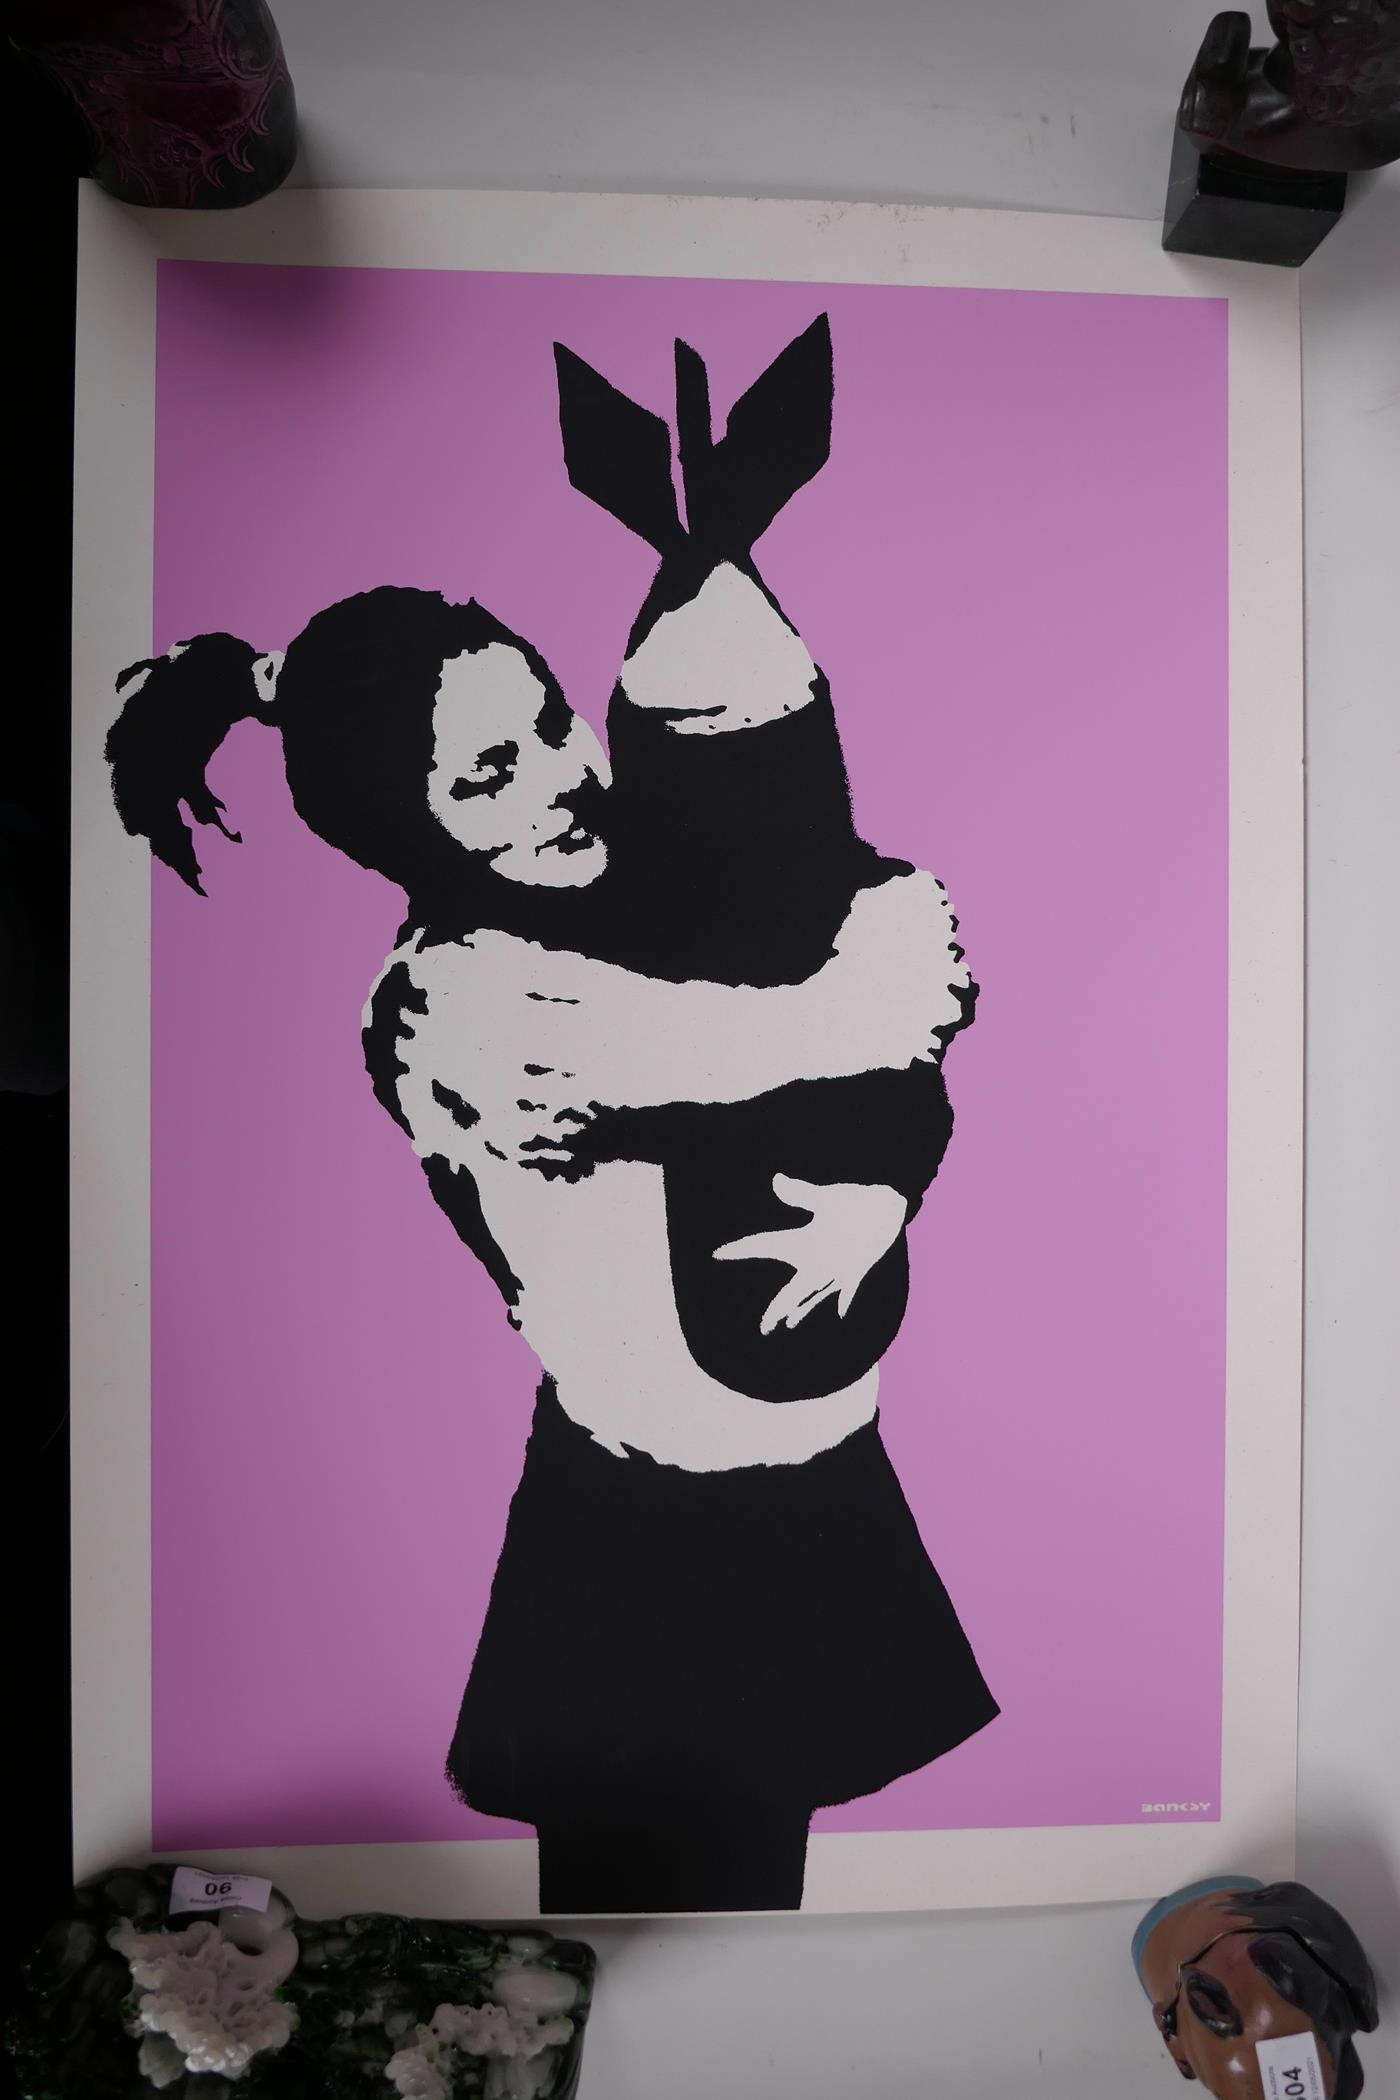 Banksy, 'Bomb Hunger', limited edition print by the West Country Prince, 66/500, with stamps - Image 2 of 6